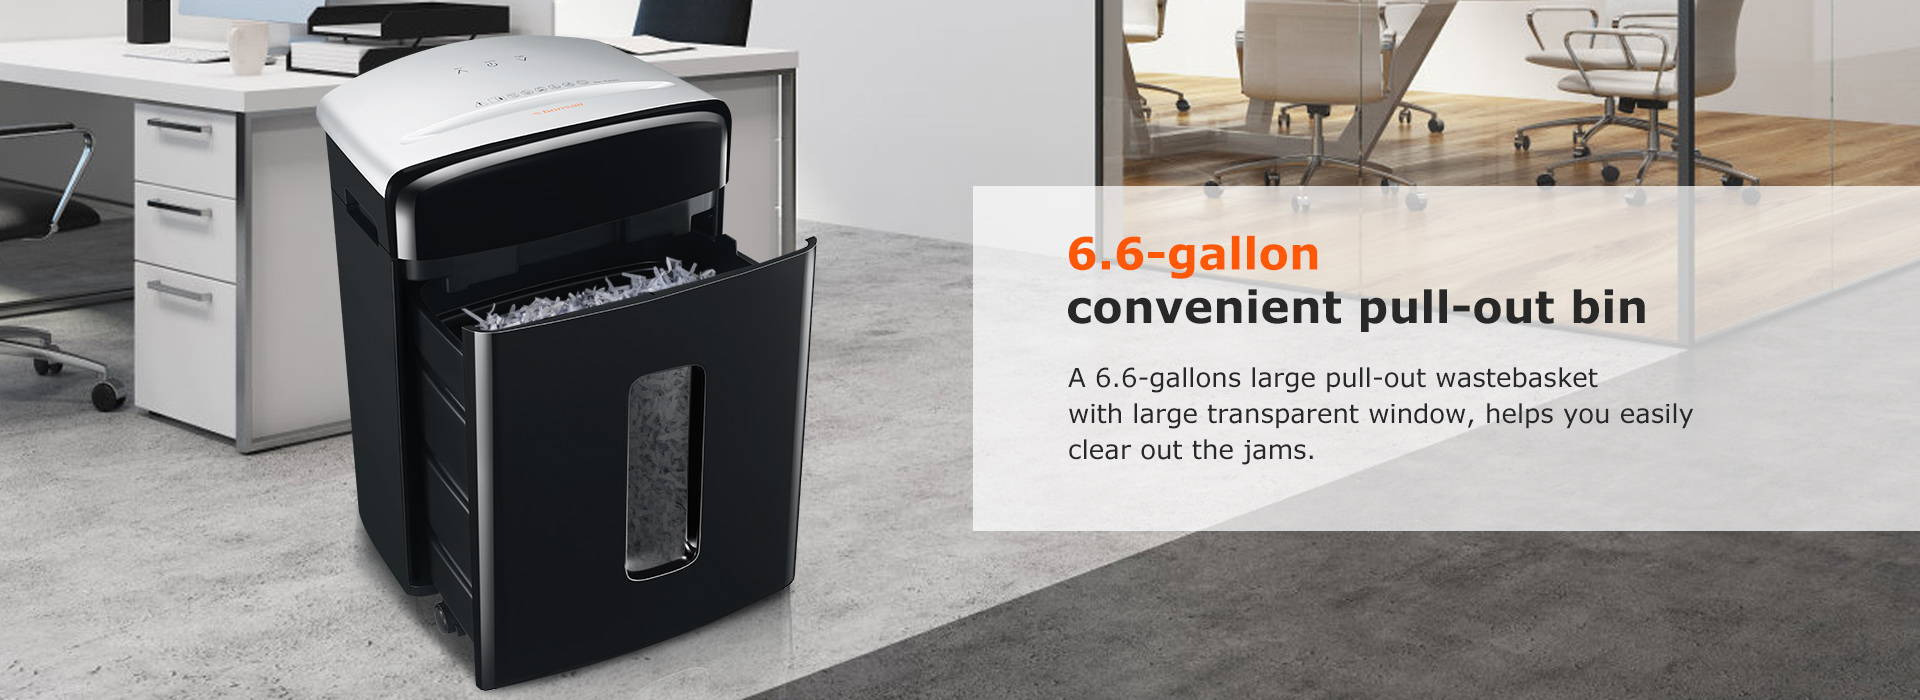 6.6-gallon convenient pull-out bin A 6.6-gallons large pull-out wastebasket with large transparent window, helps you easily clear out the jams.